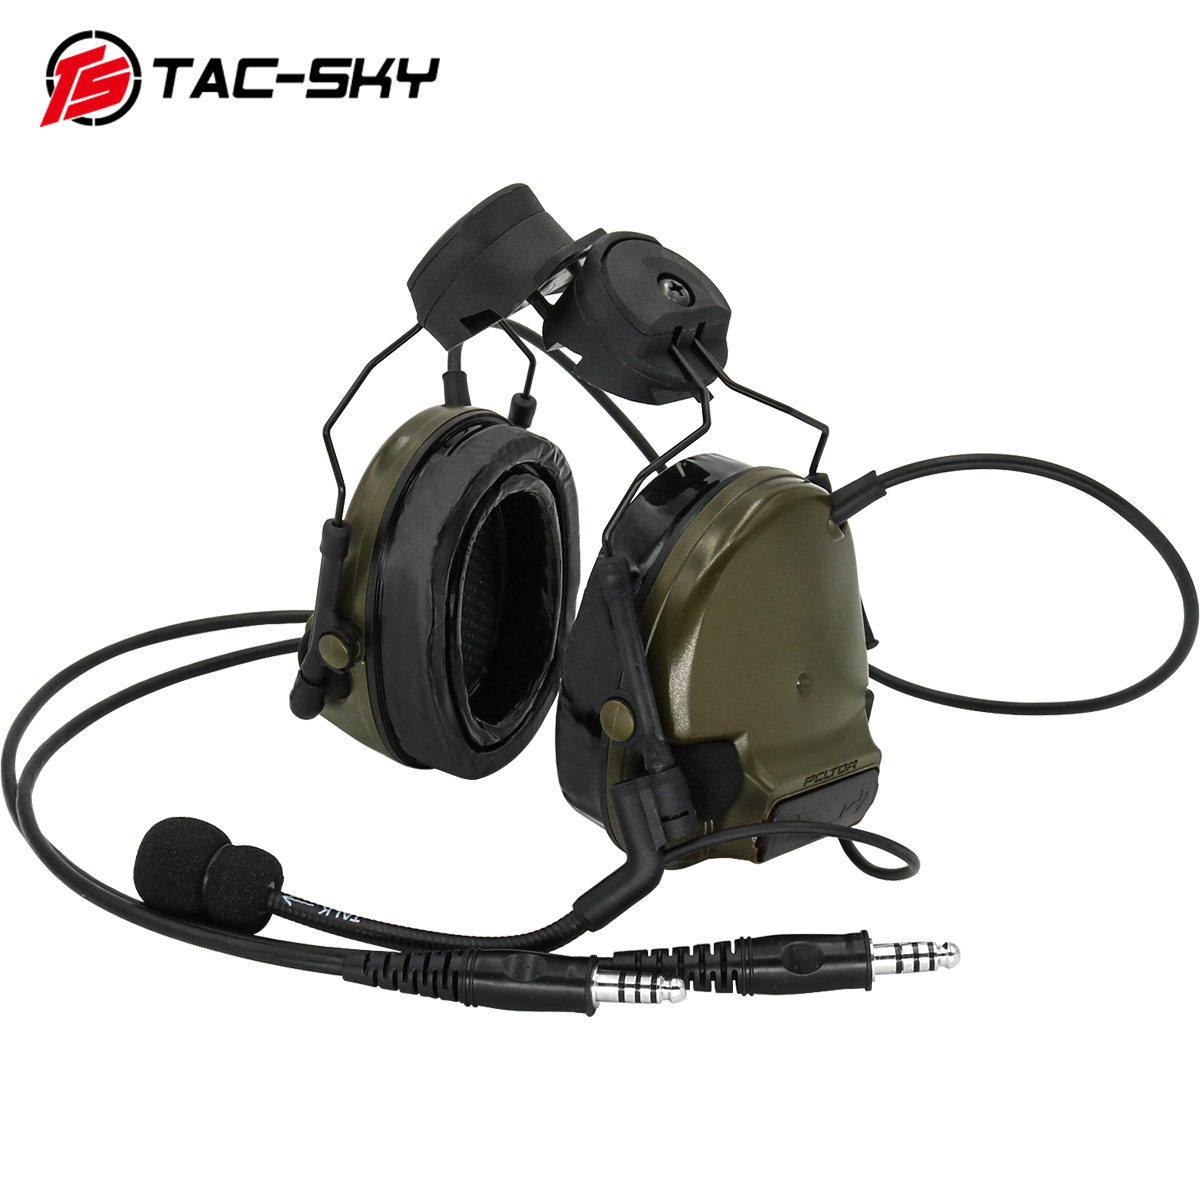 TAC-SKY COMTAC Tactical Bracket Headset Comtac Iii Dual Communication Silicone Earmuff Helmet Bracket Military Tactical Headset